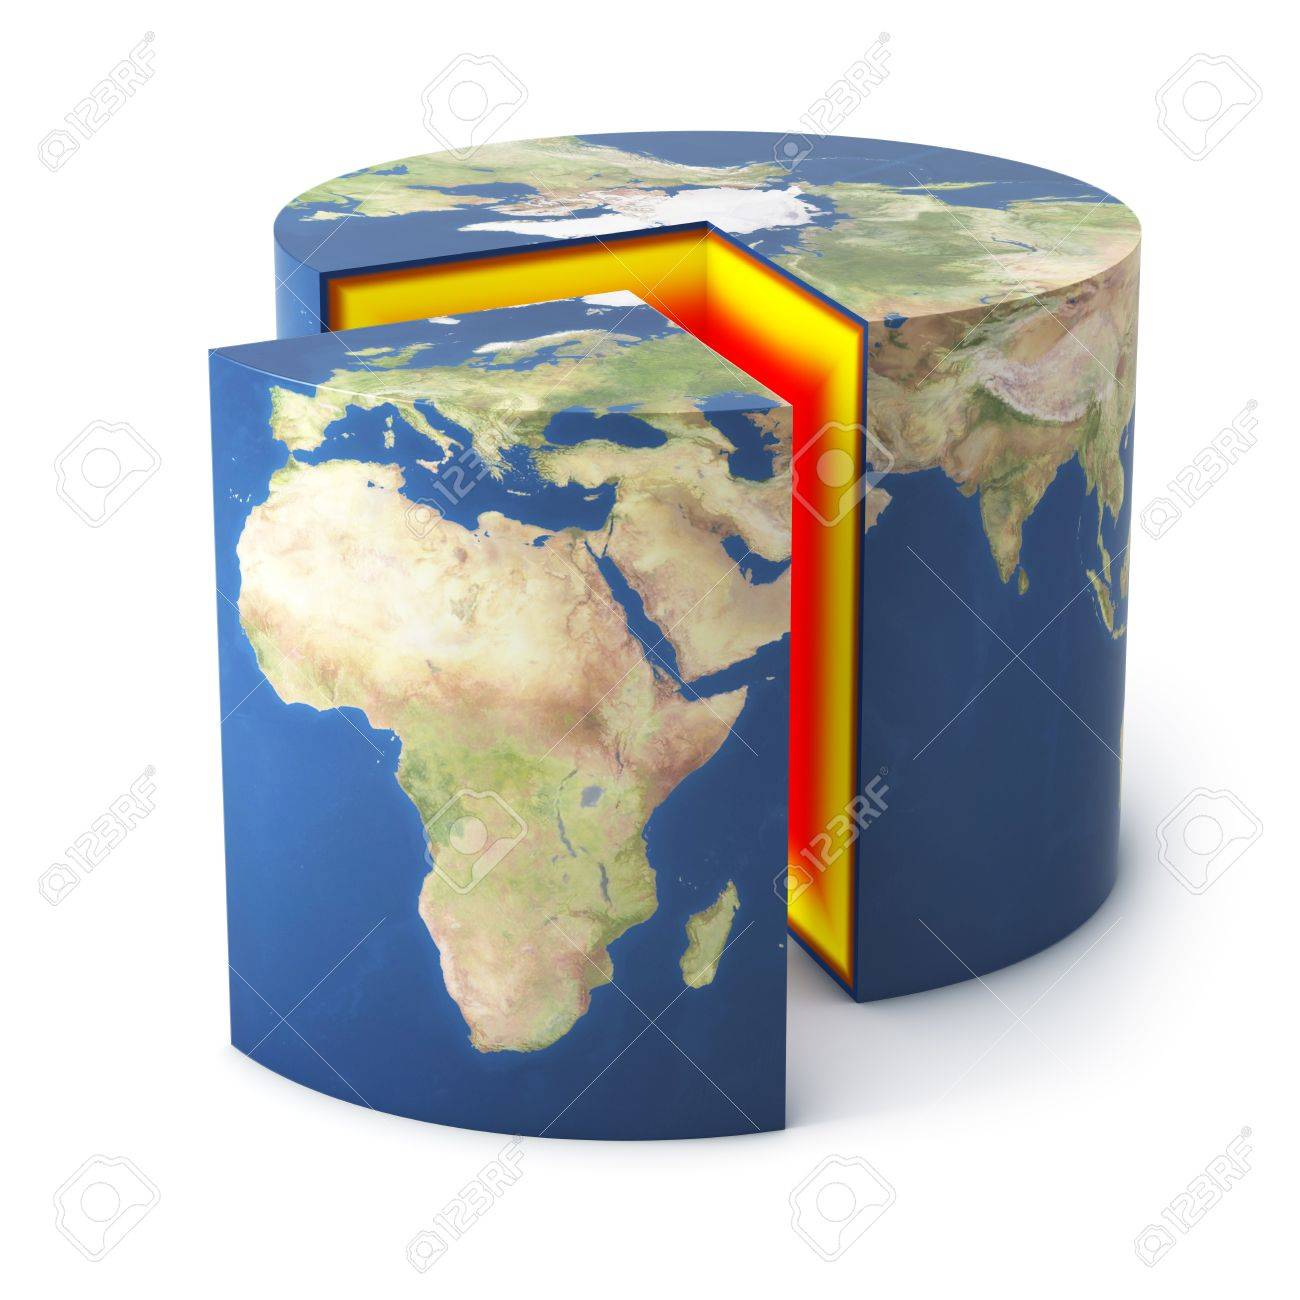 Earth cylinder shape in section isolated Stock Photo - 7624855